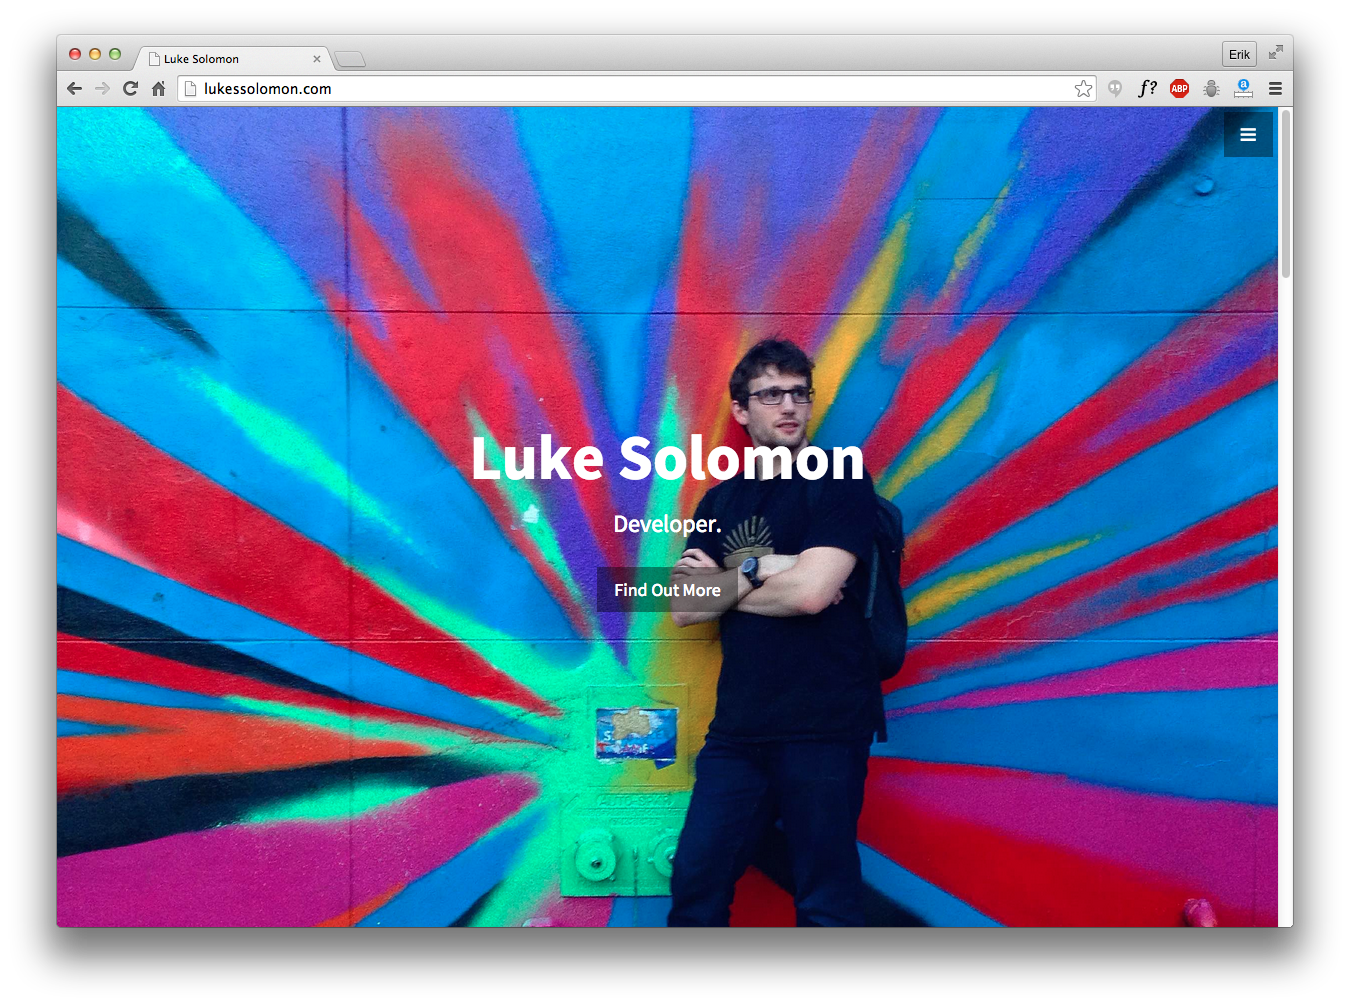 Luke Solomon's Personal Website